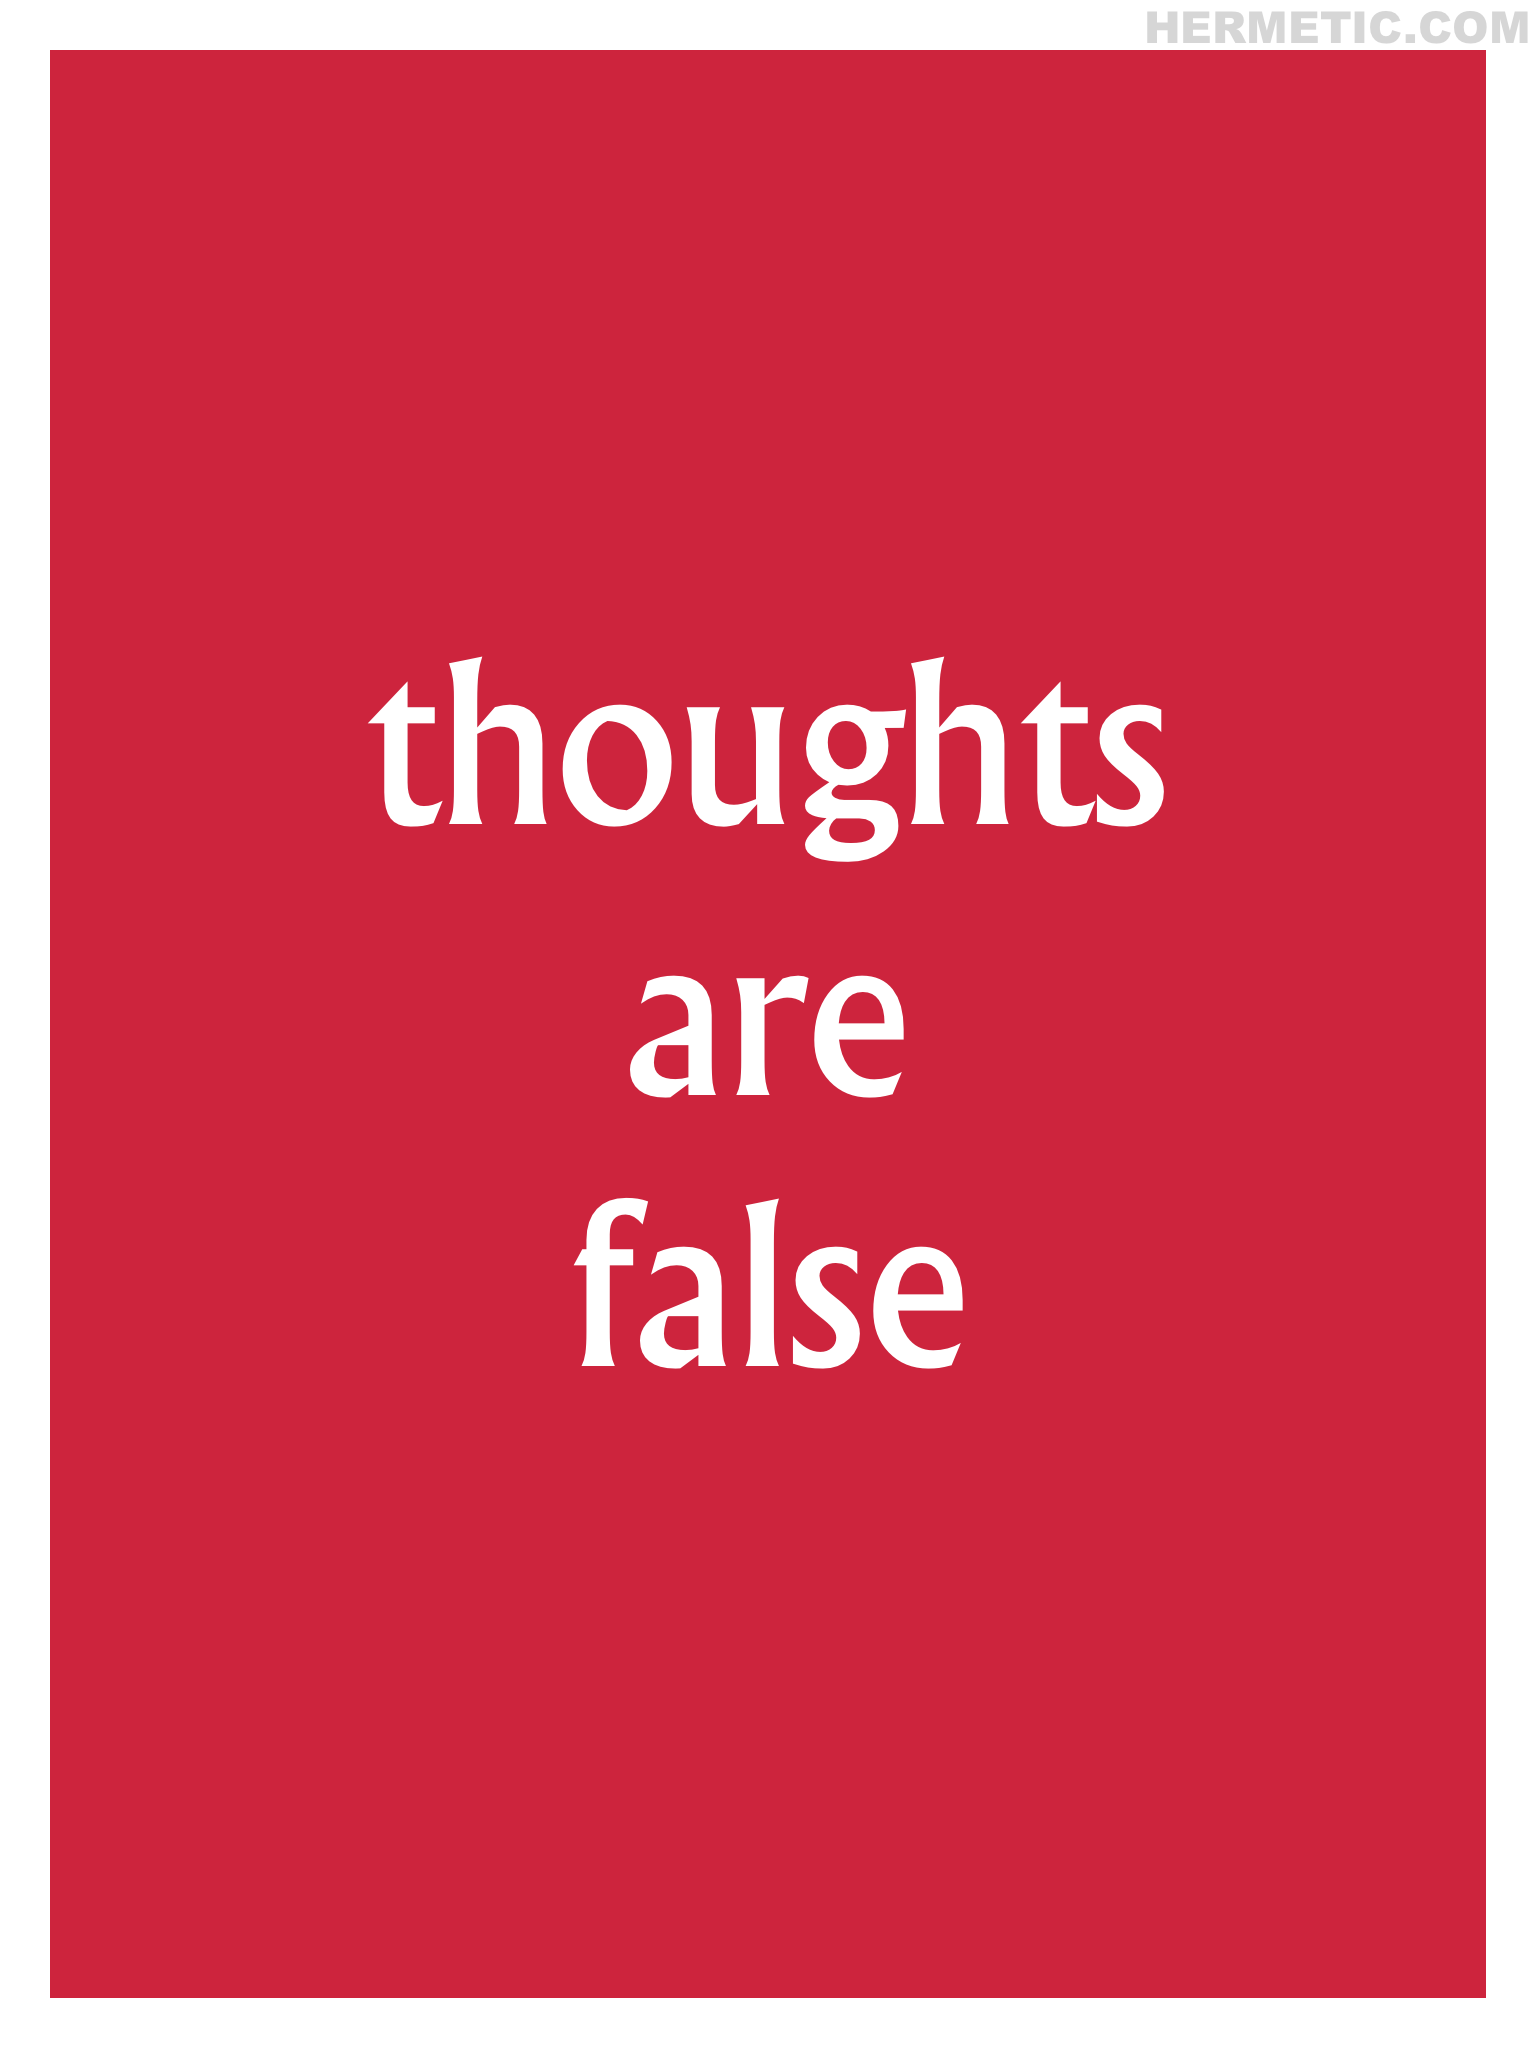 Village THOUGHTS ARE FALSE Propaganda Poster from Hermetic Library Office of the Ministry of Information